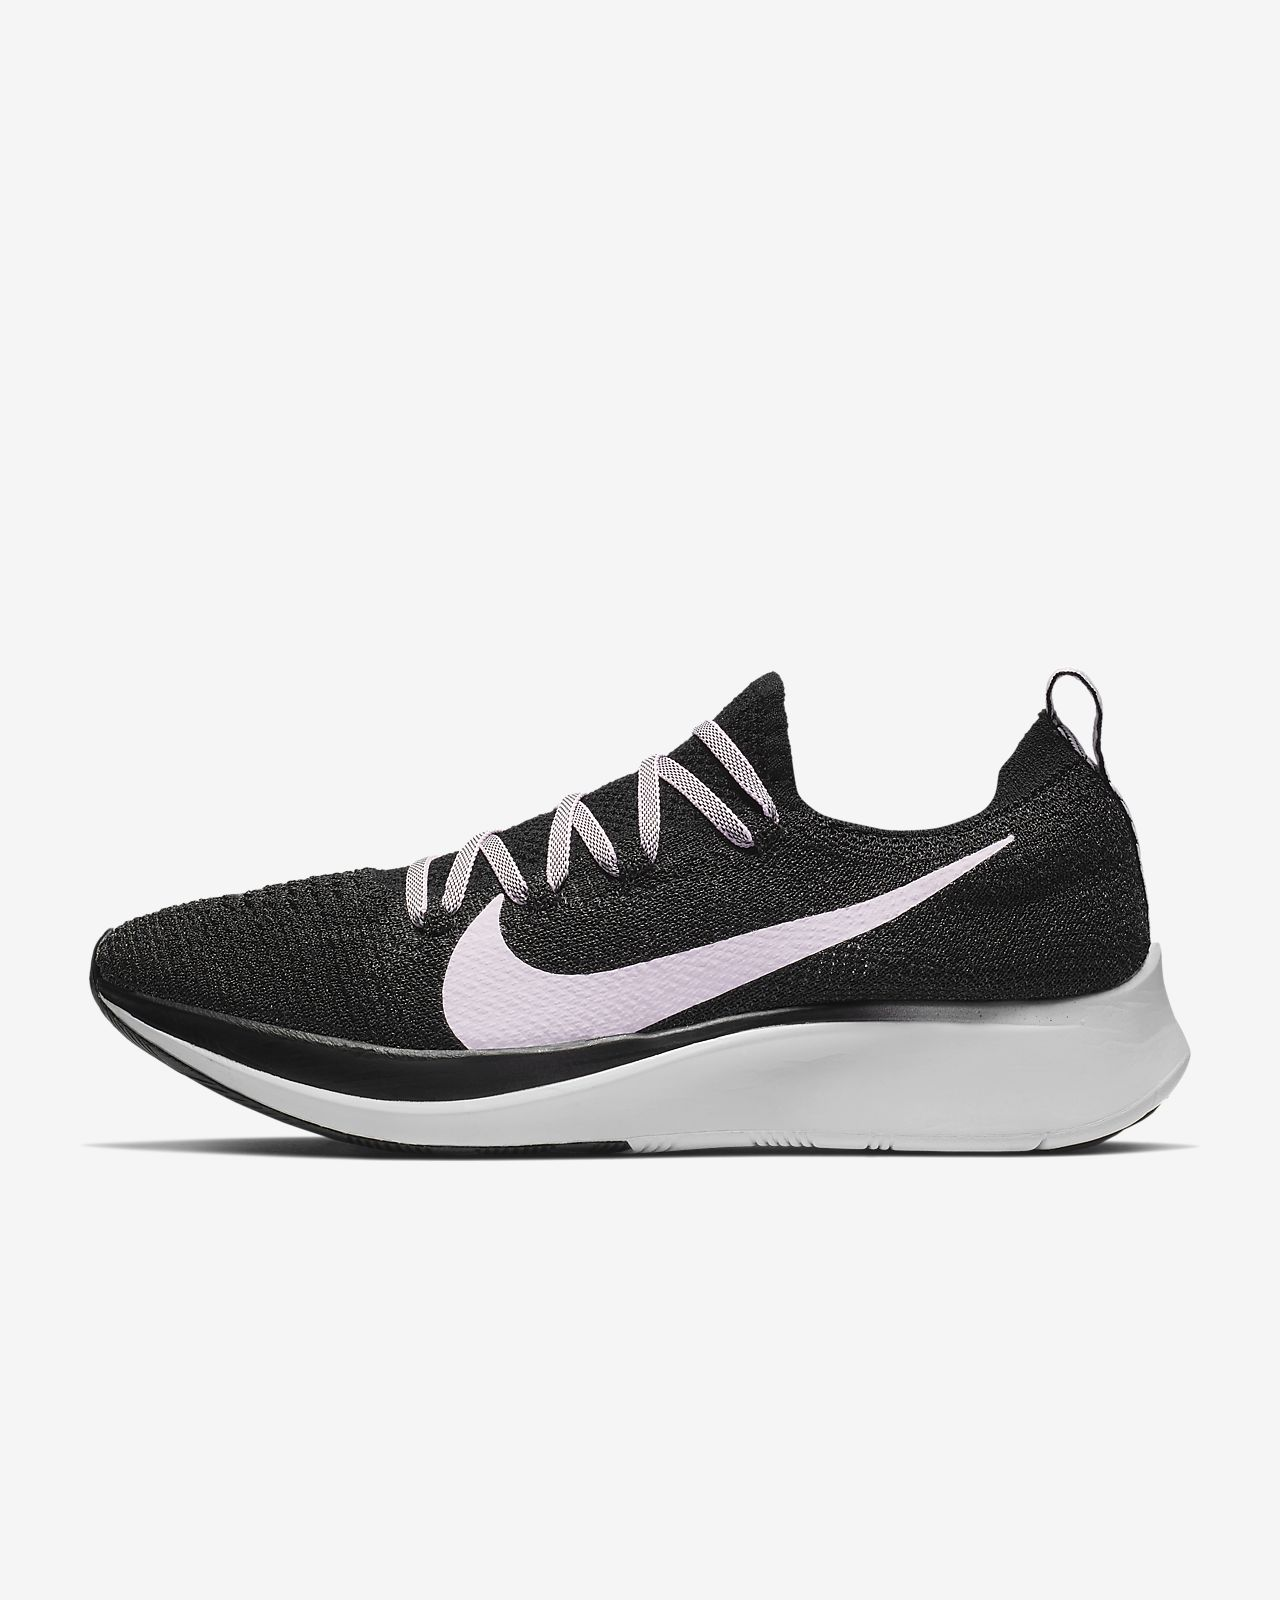 Nike Zoom Fly Flyknit Women's Running Shoe